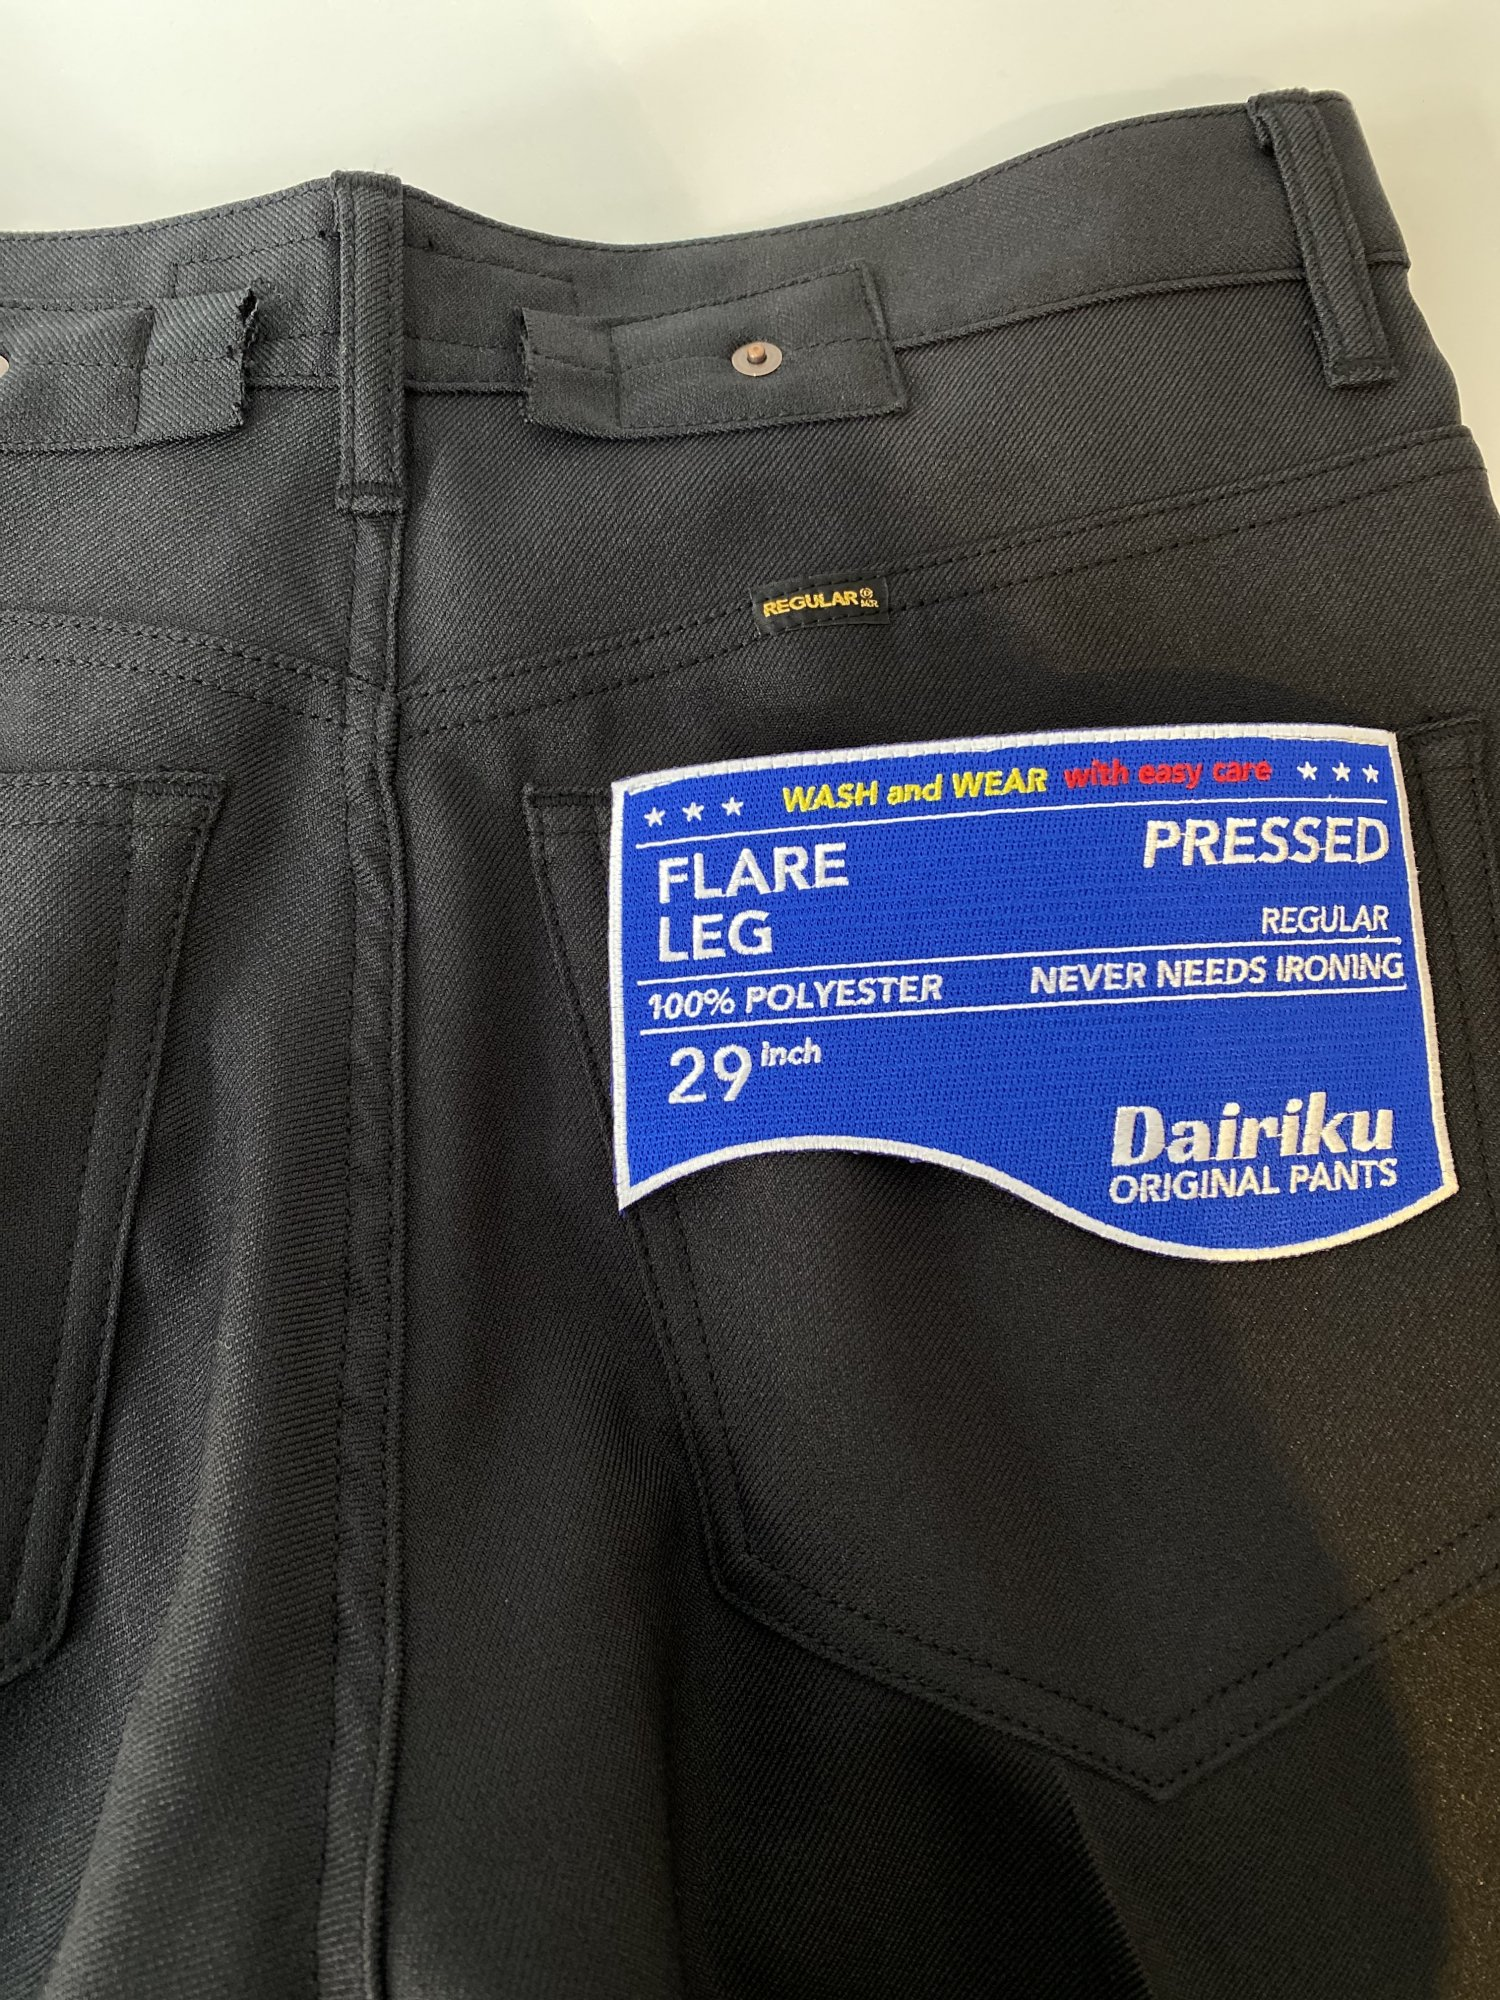 DAIRIKU<br />Flare Flasher Pressed Pants / Black  <img class='new_mark_img2' src='https://img.shop-pro.jp/img/new/icons14.gif' style='border:none;display:inline;margin:0px;padding:0px;width:auto;' />